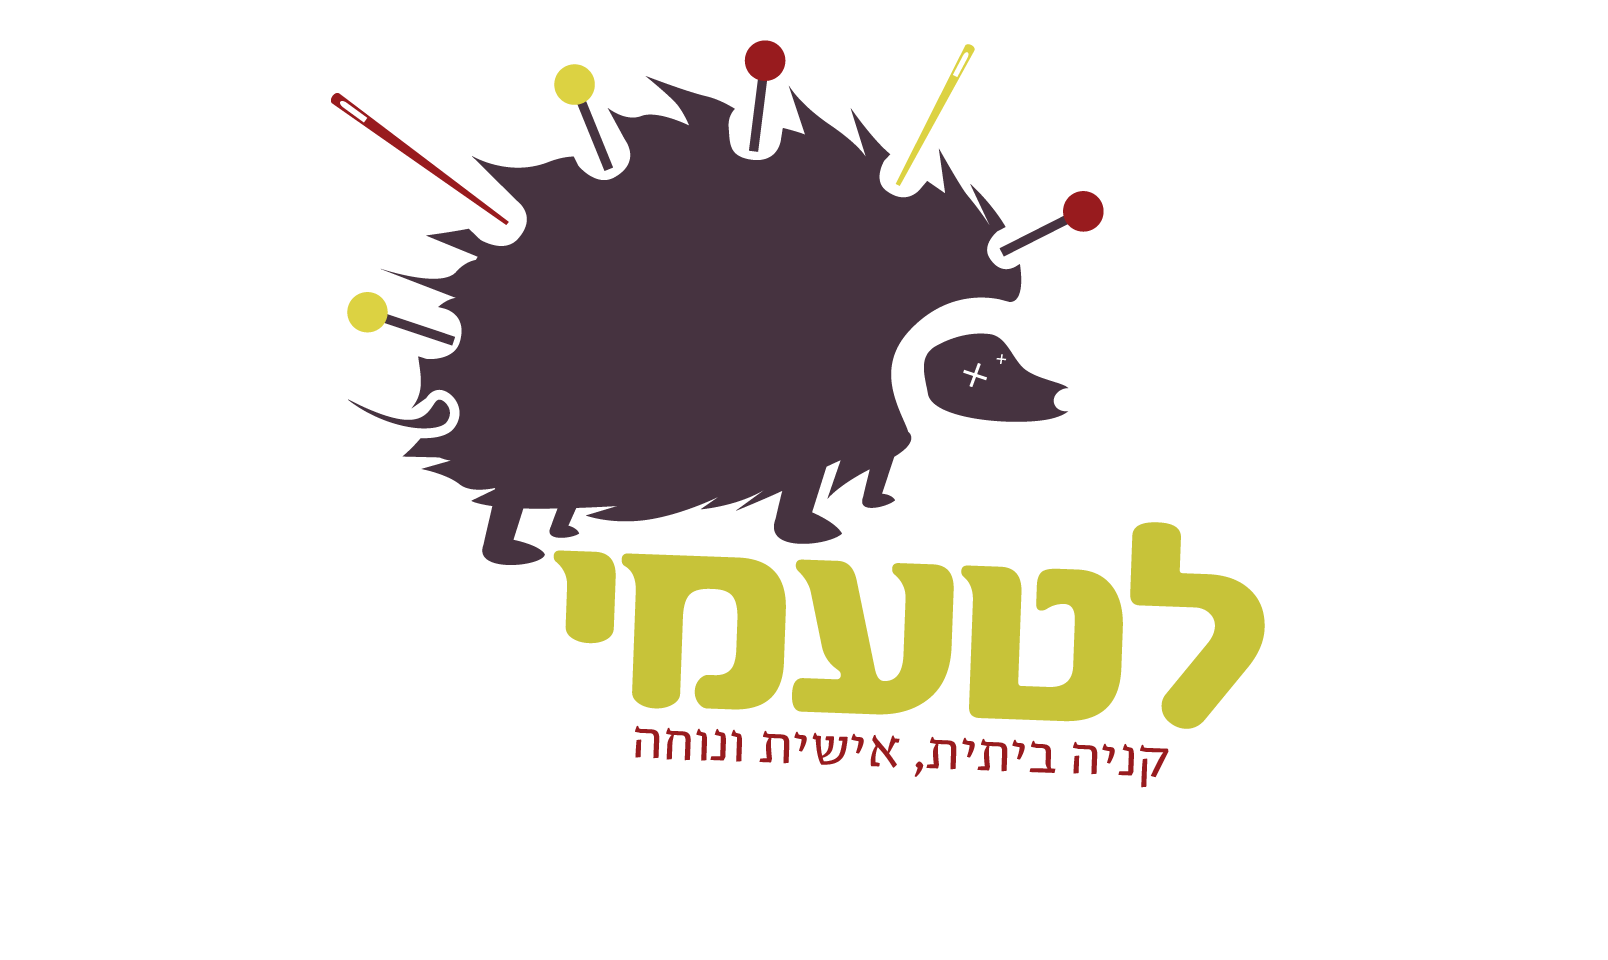 http://bigeyes.co.il/wp-content/uploads/2019/06/letaami-logo-mobile.png